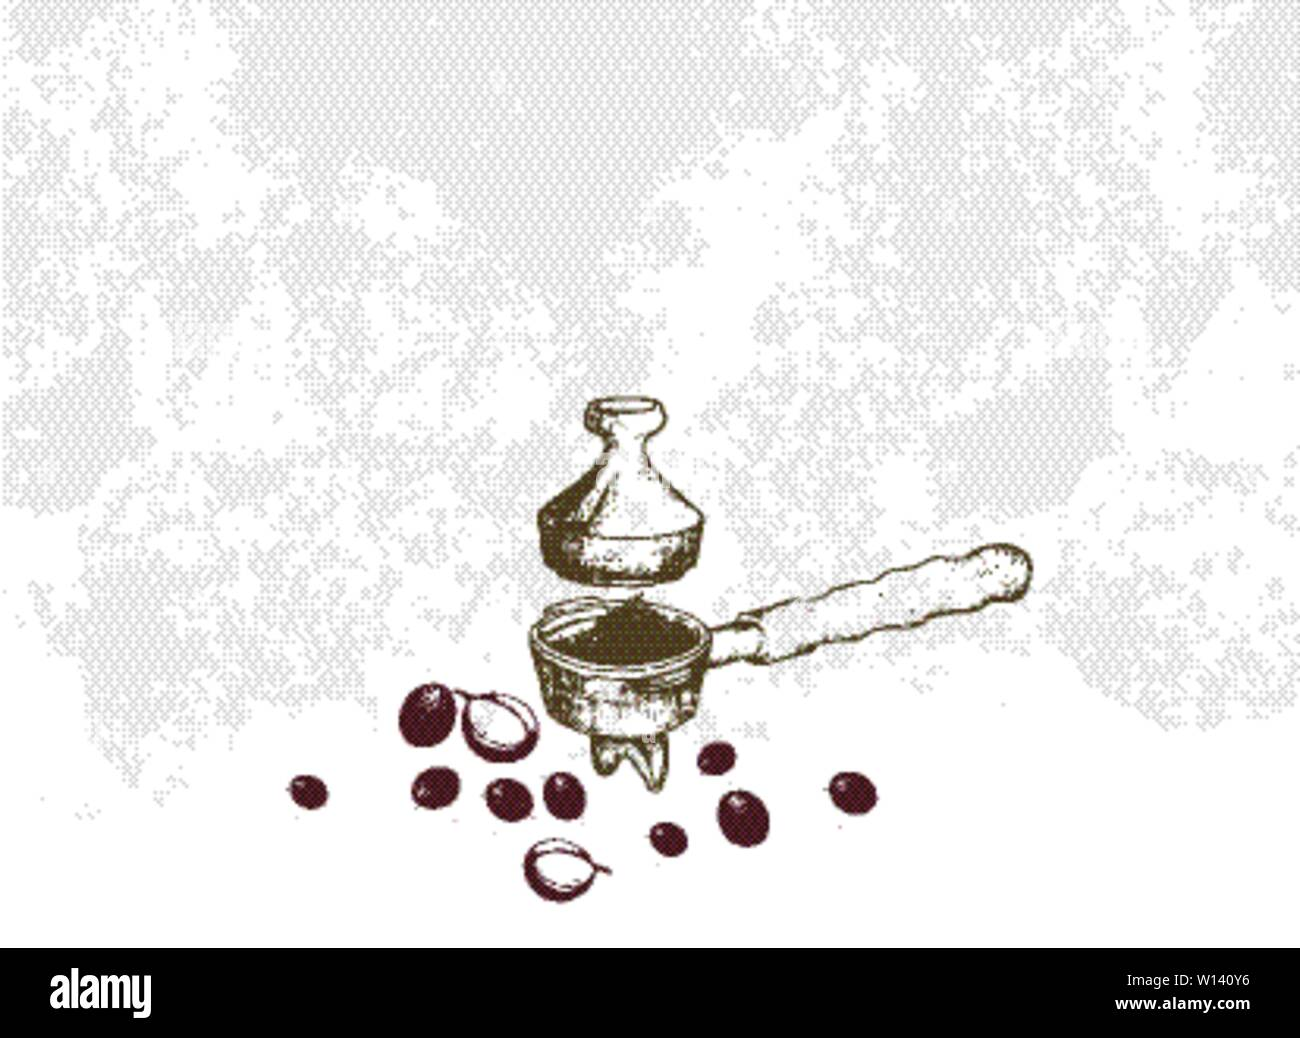 Coffee Time, Illustration Hand Drawn Sketch of Roasted Coffee Beans in Metal Portafilter or Filter Holder and Tamper of Espresso Machine with Assorted Stock Vector